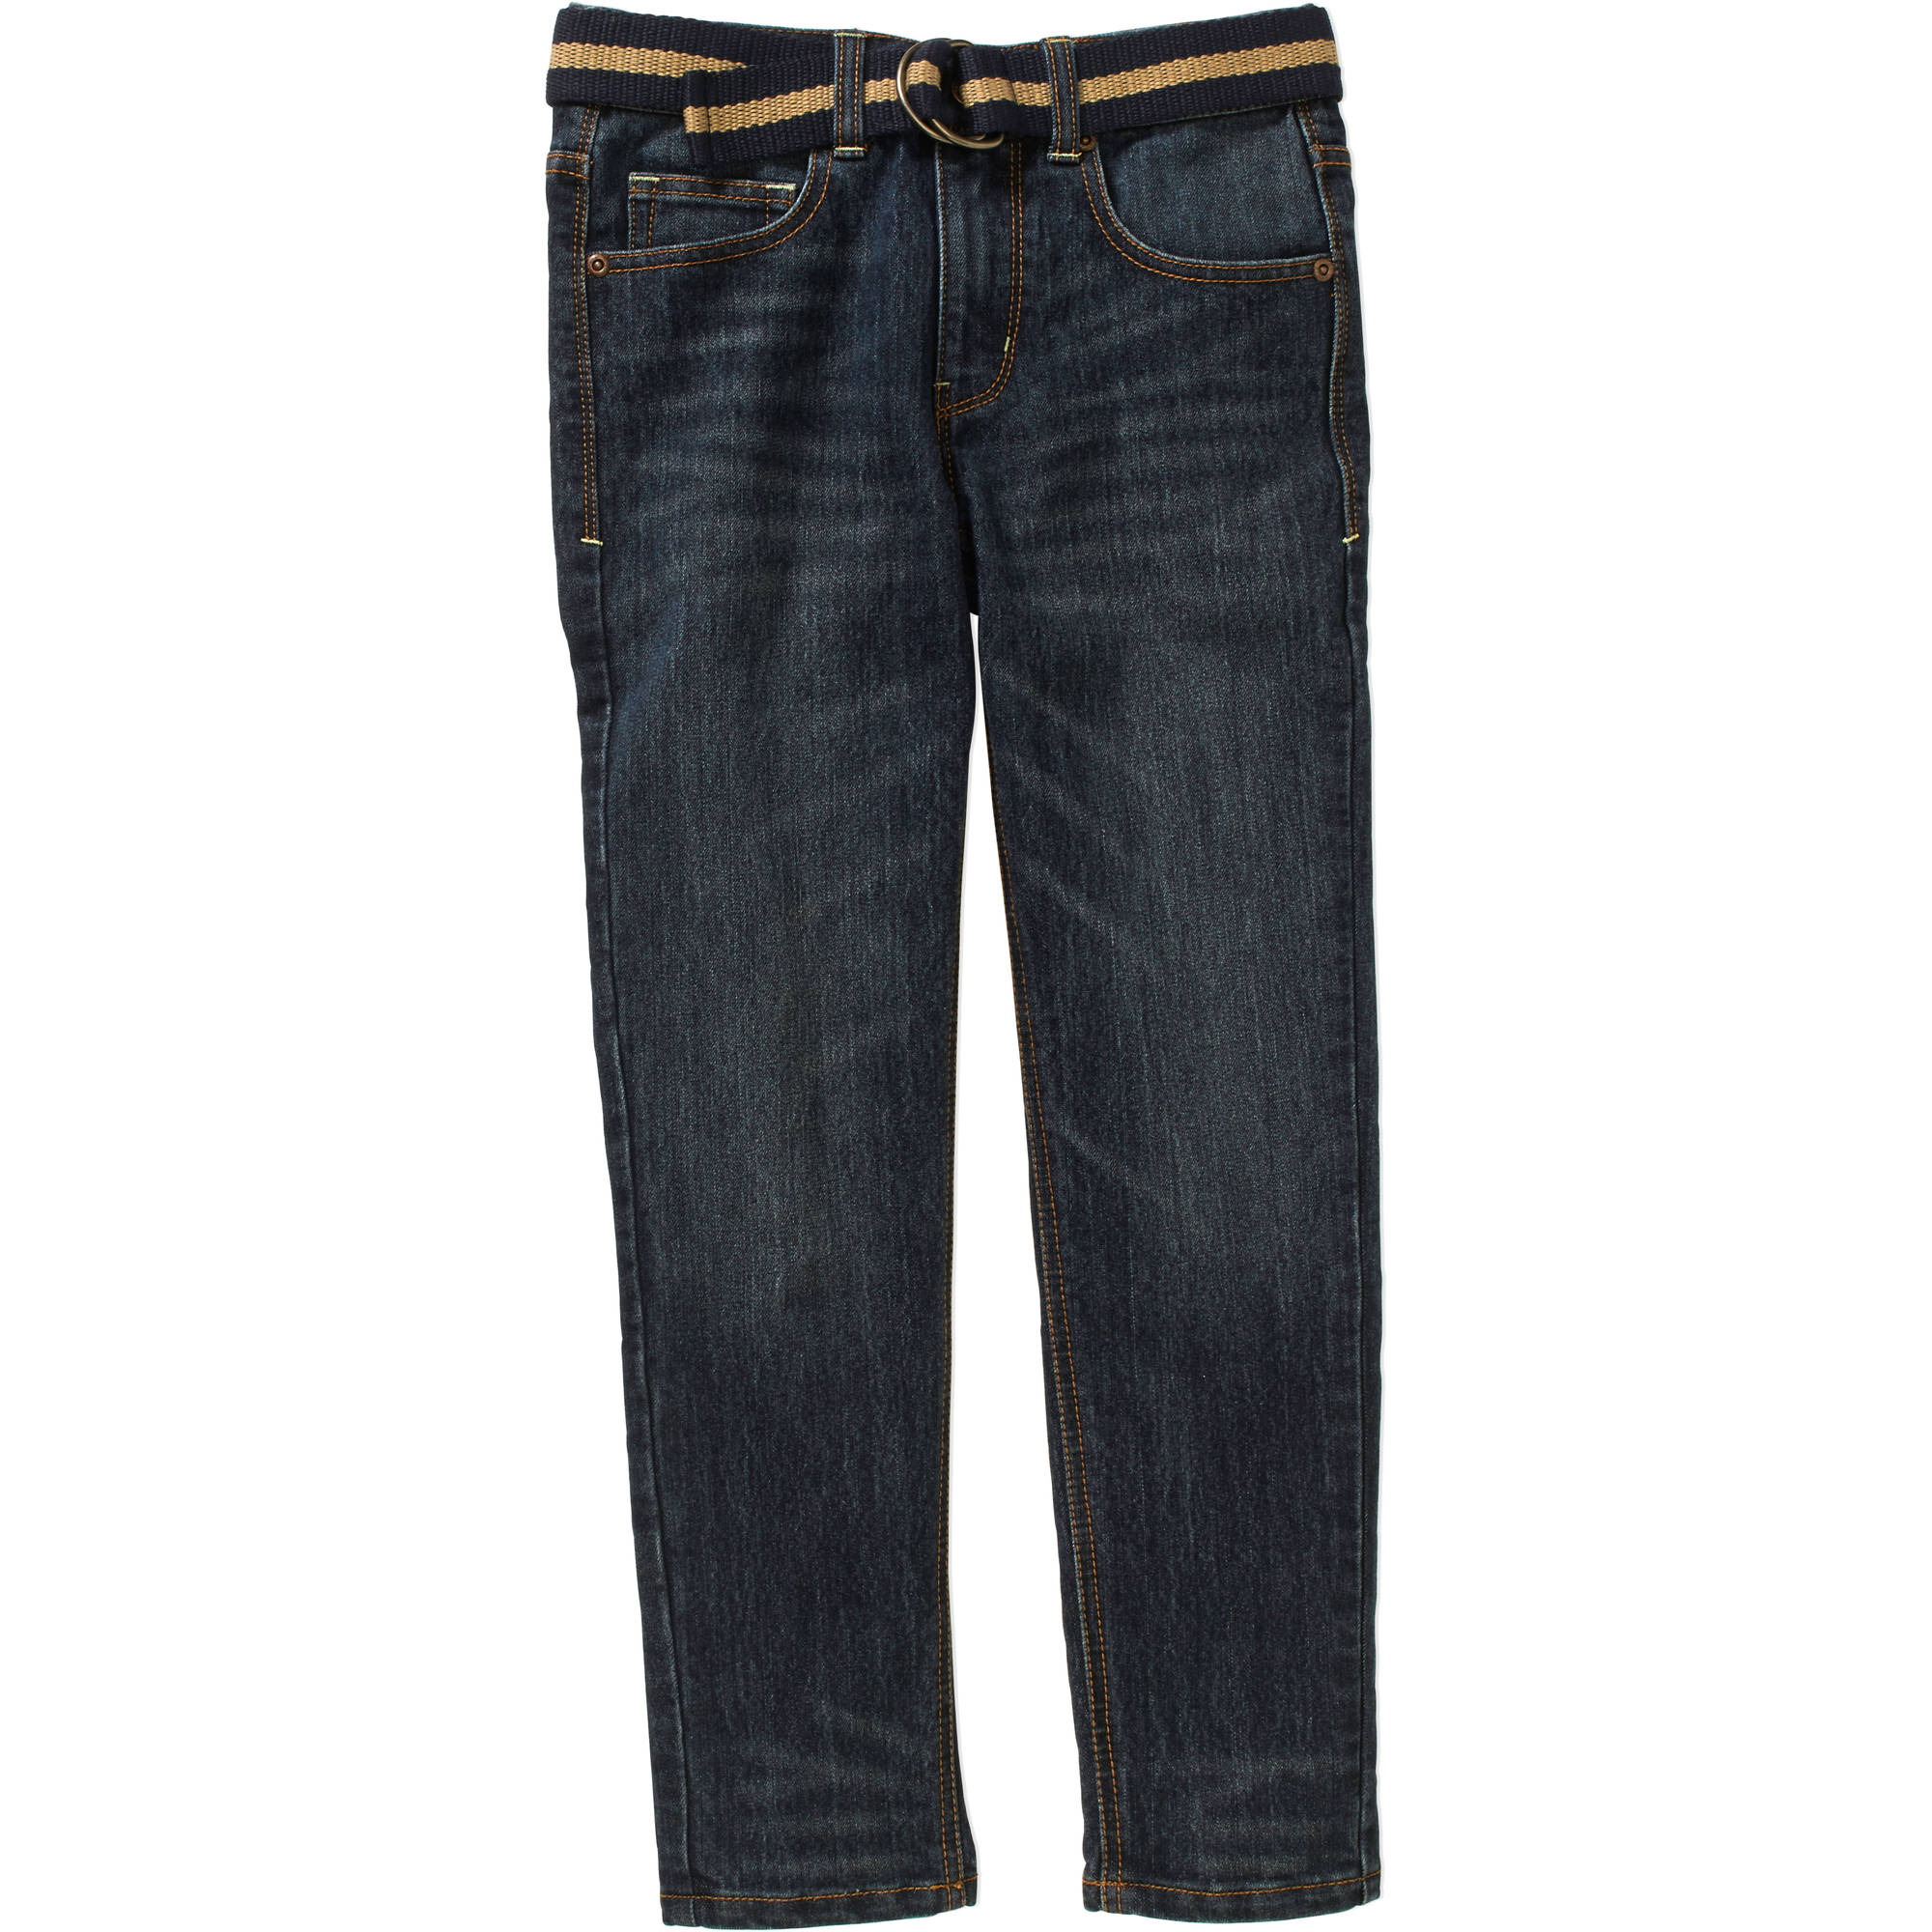 Faded Glory Boys' Belted Fashion Denim Jeans